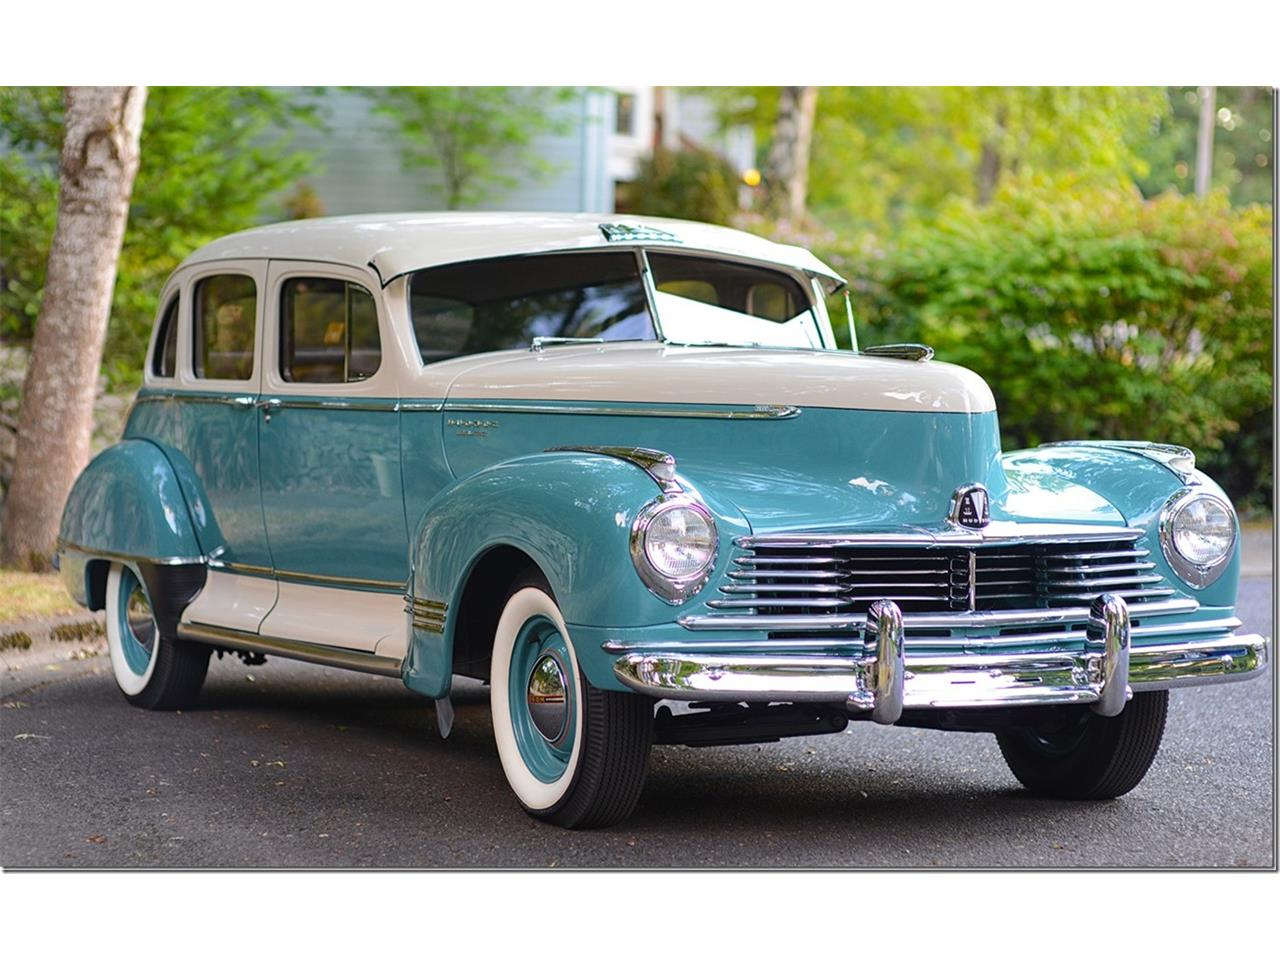 1947 hudson super 8 for sale classiccars com cc 971913 blueprints for wiring harness large picture of '47 super 8 ktxl